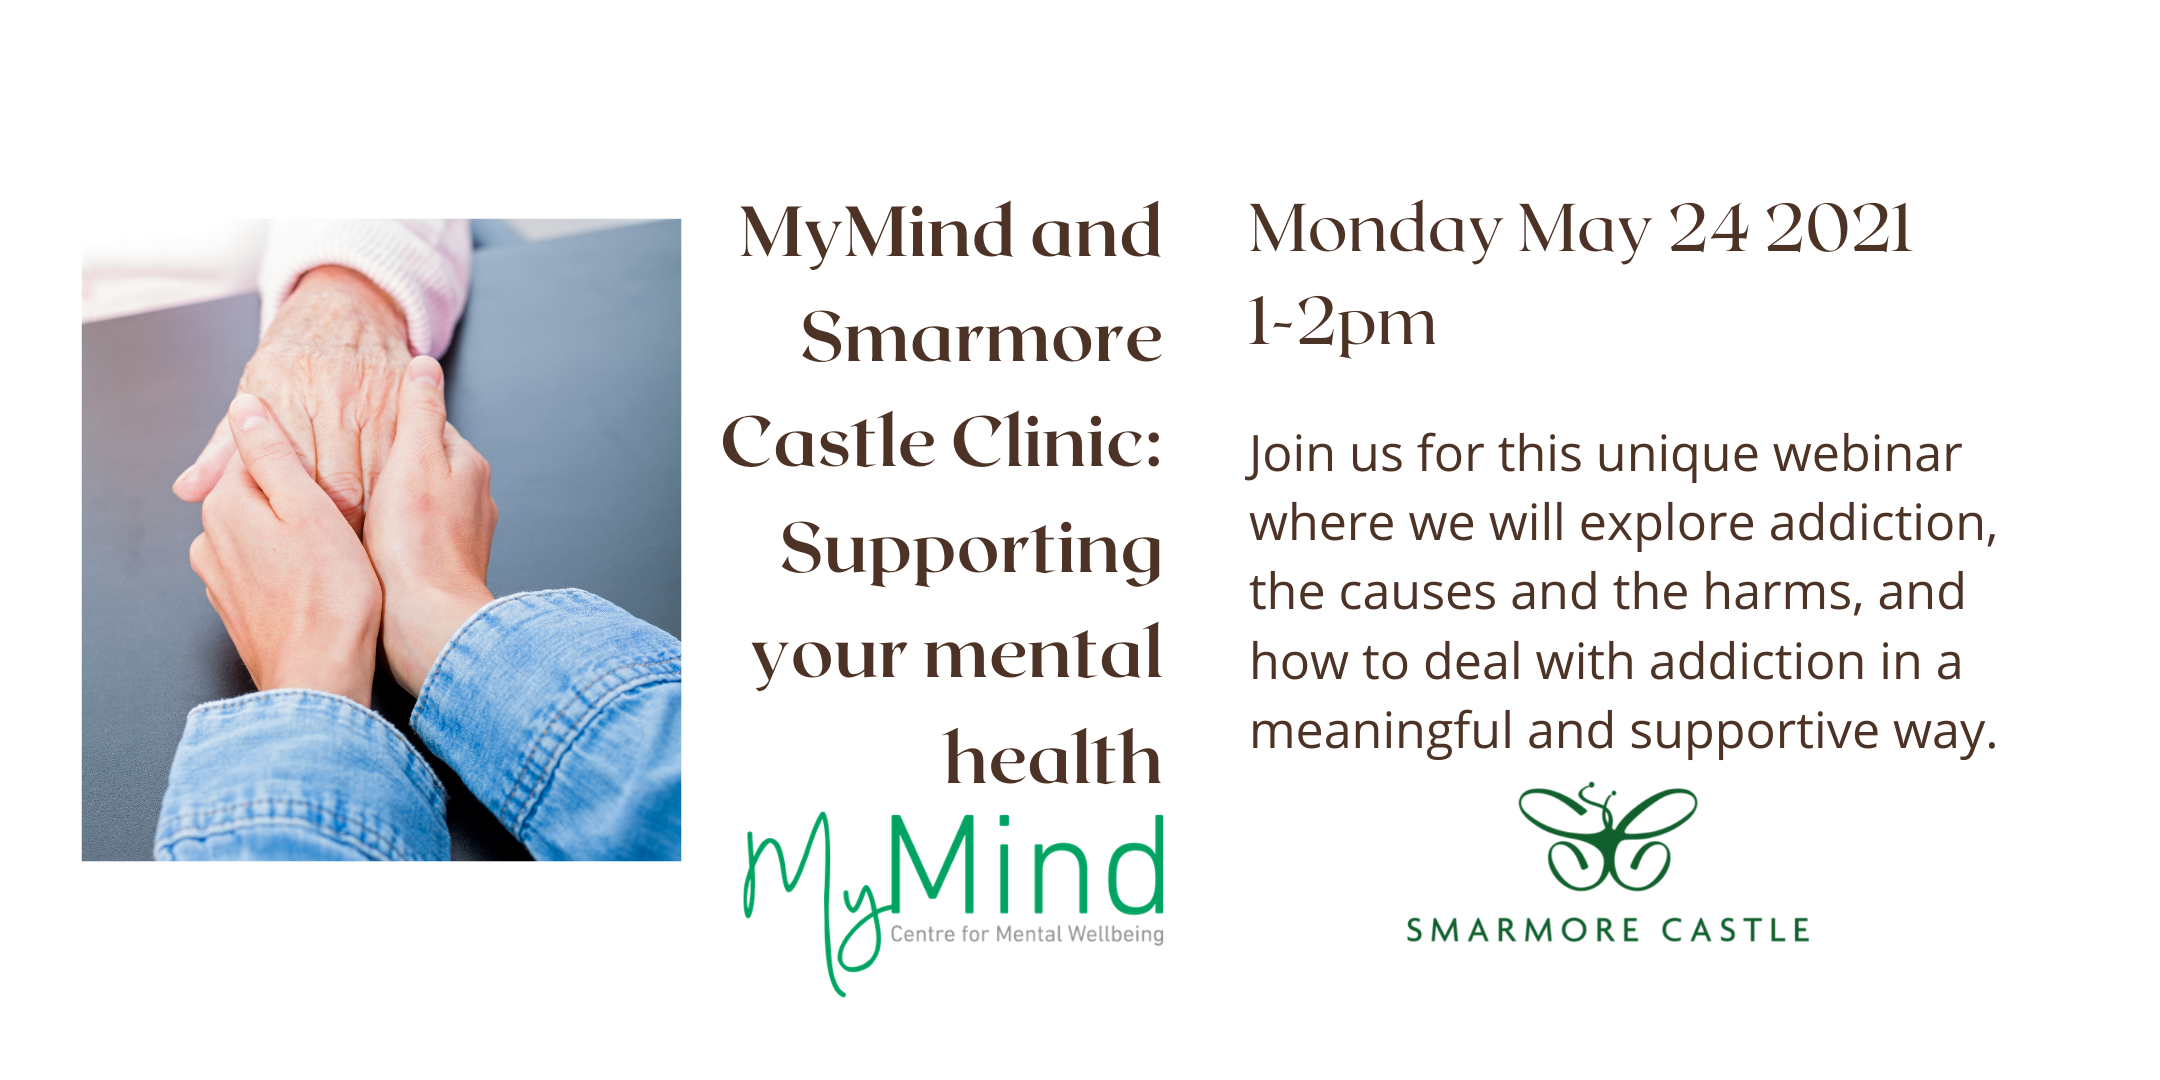 MyMind and Smarmore Castle Clinic: Supporting your Mental Health webinar